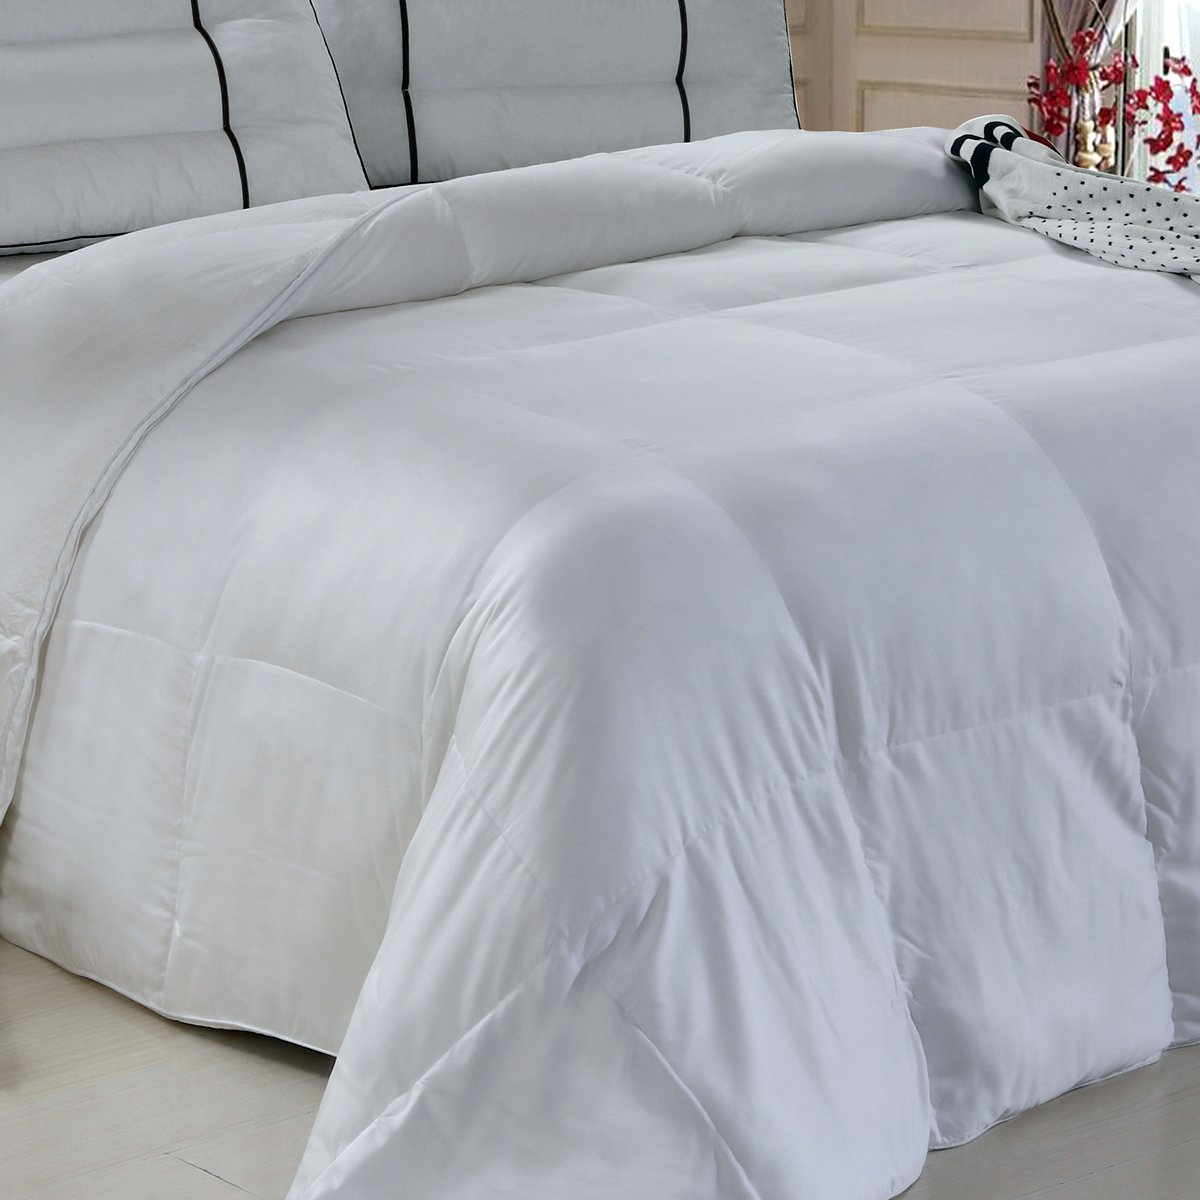 Royal Hotel Silky Soft and Fluffy Bamboo Down Alternative Comforter, 300-Thread-Count, 73 Ounce Fill, Bamboo fabric shell, Full, Solid White